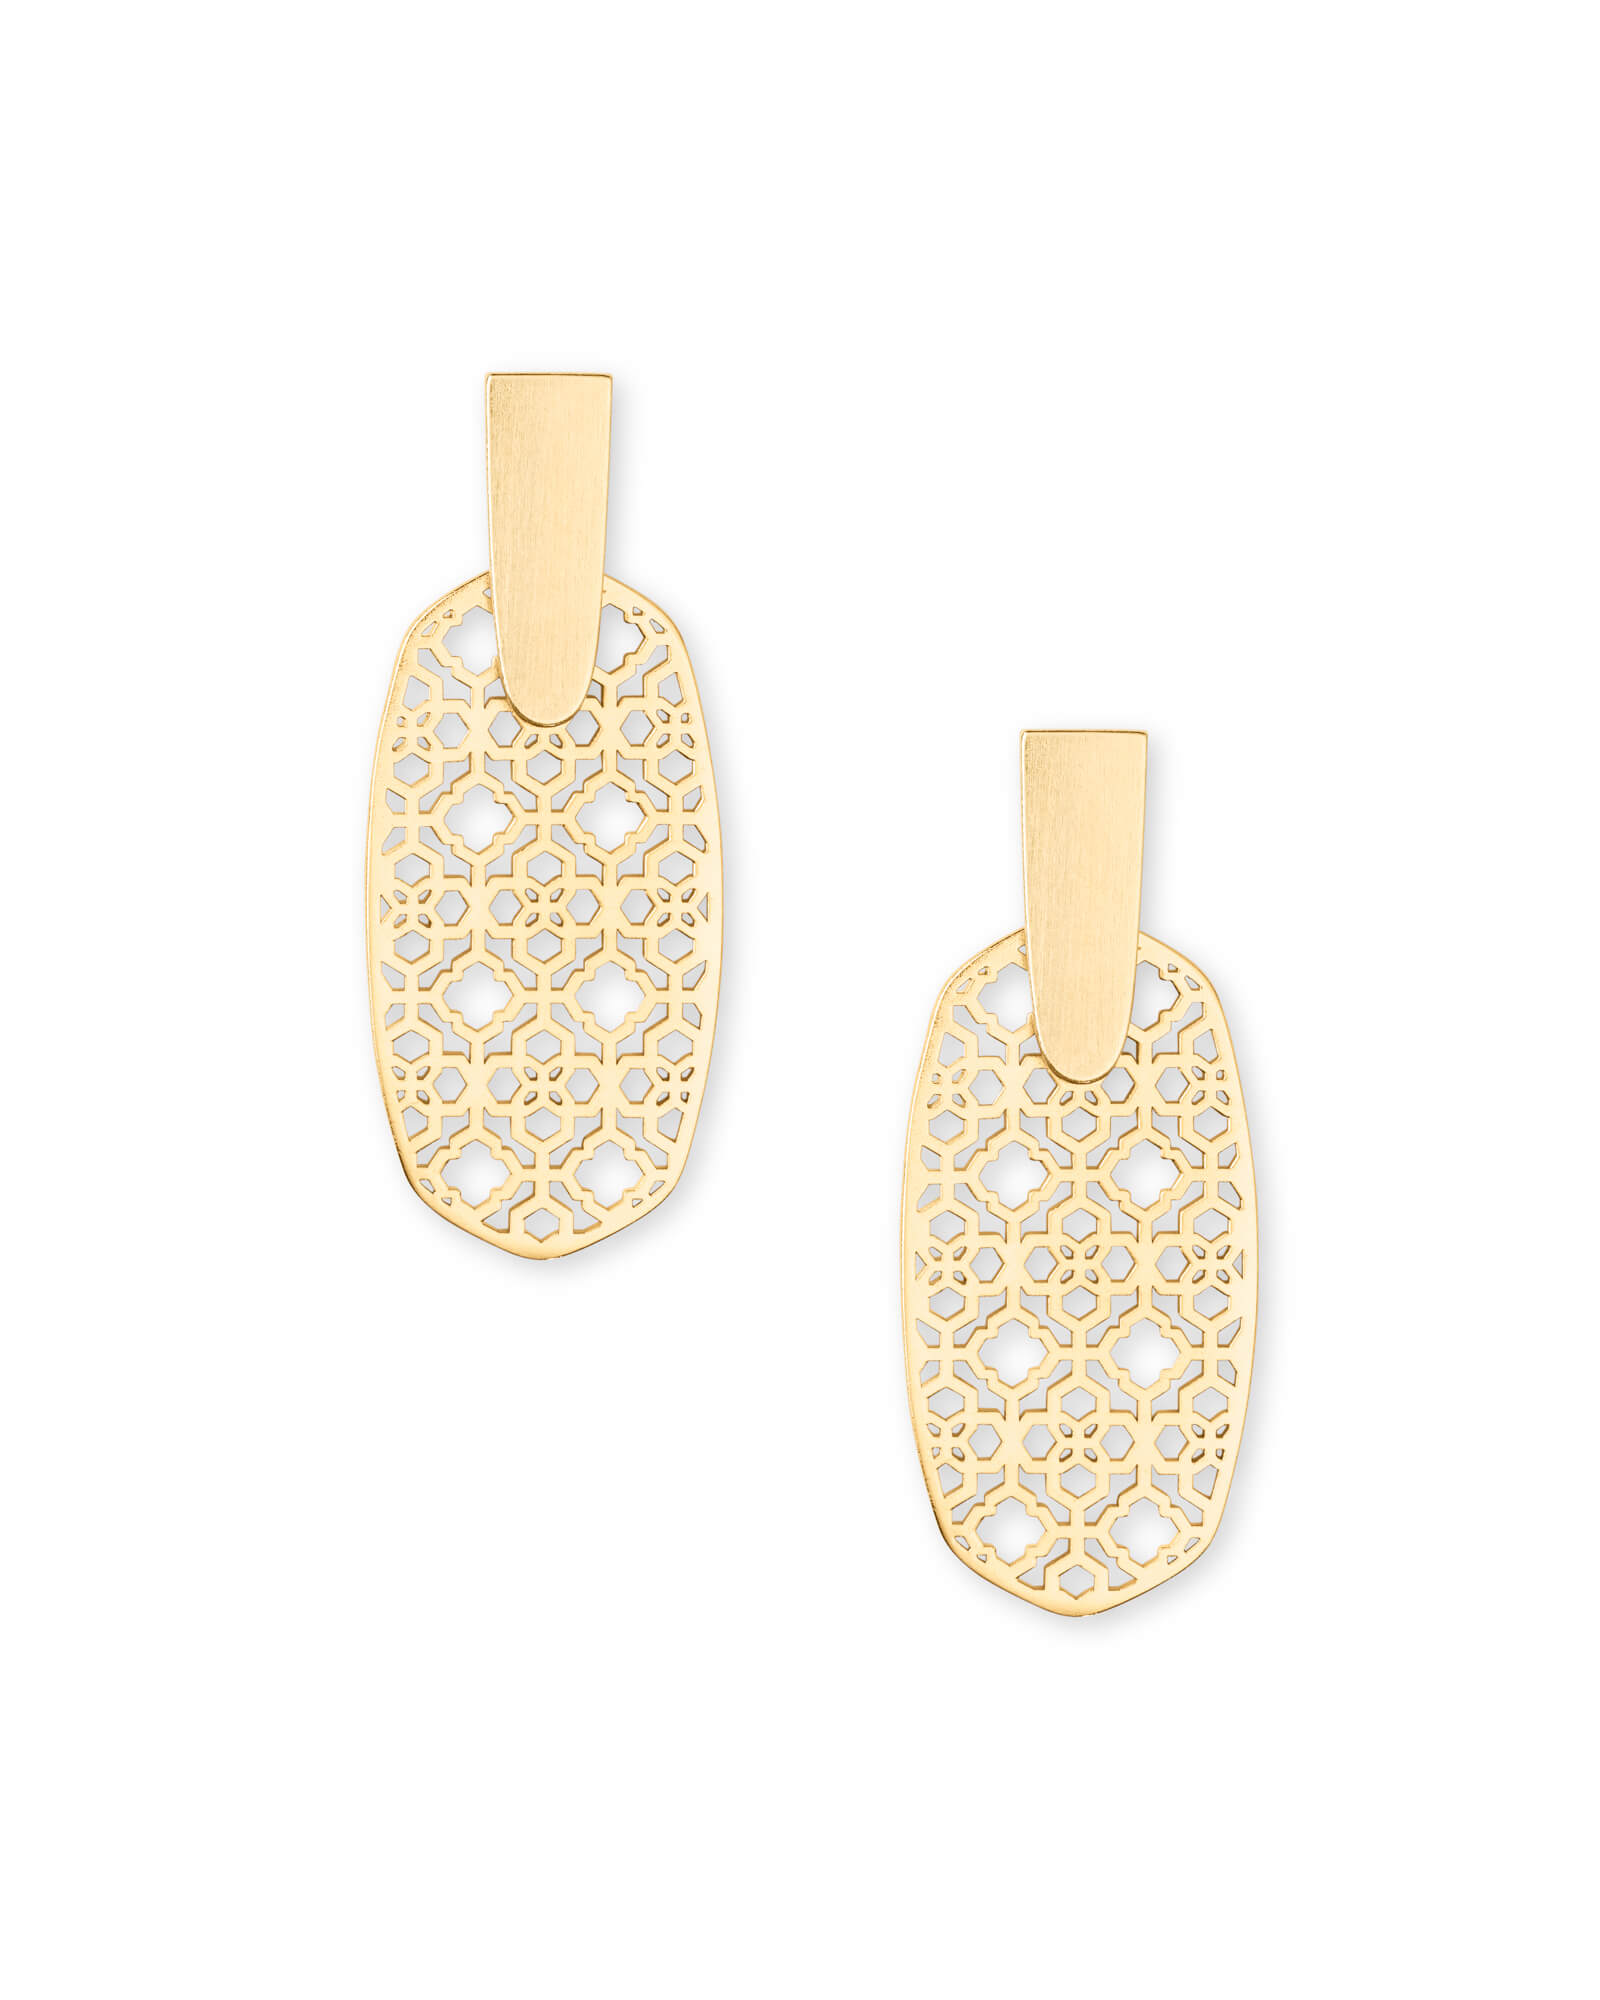 Aragon Gold Drop Earrings in Gold Filigree